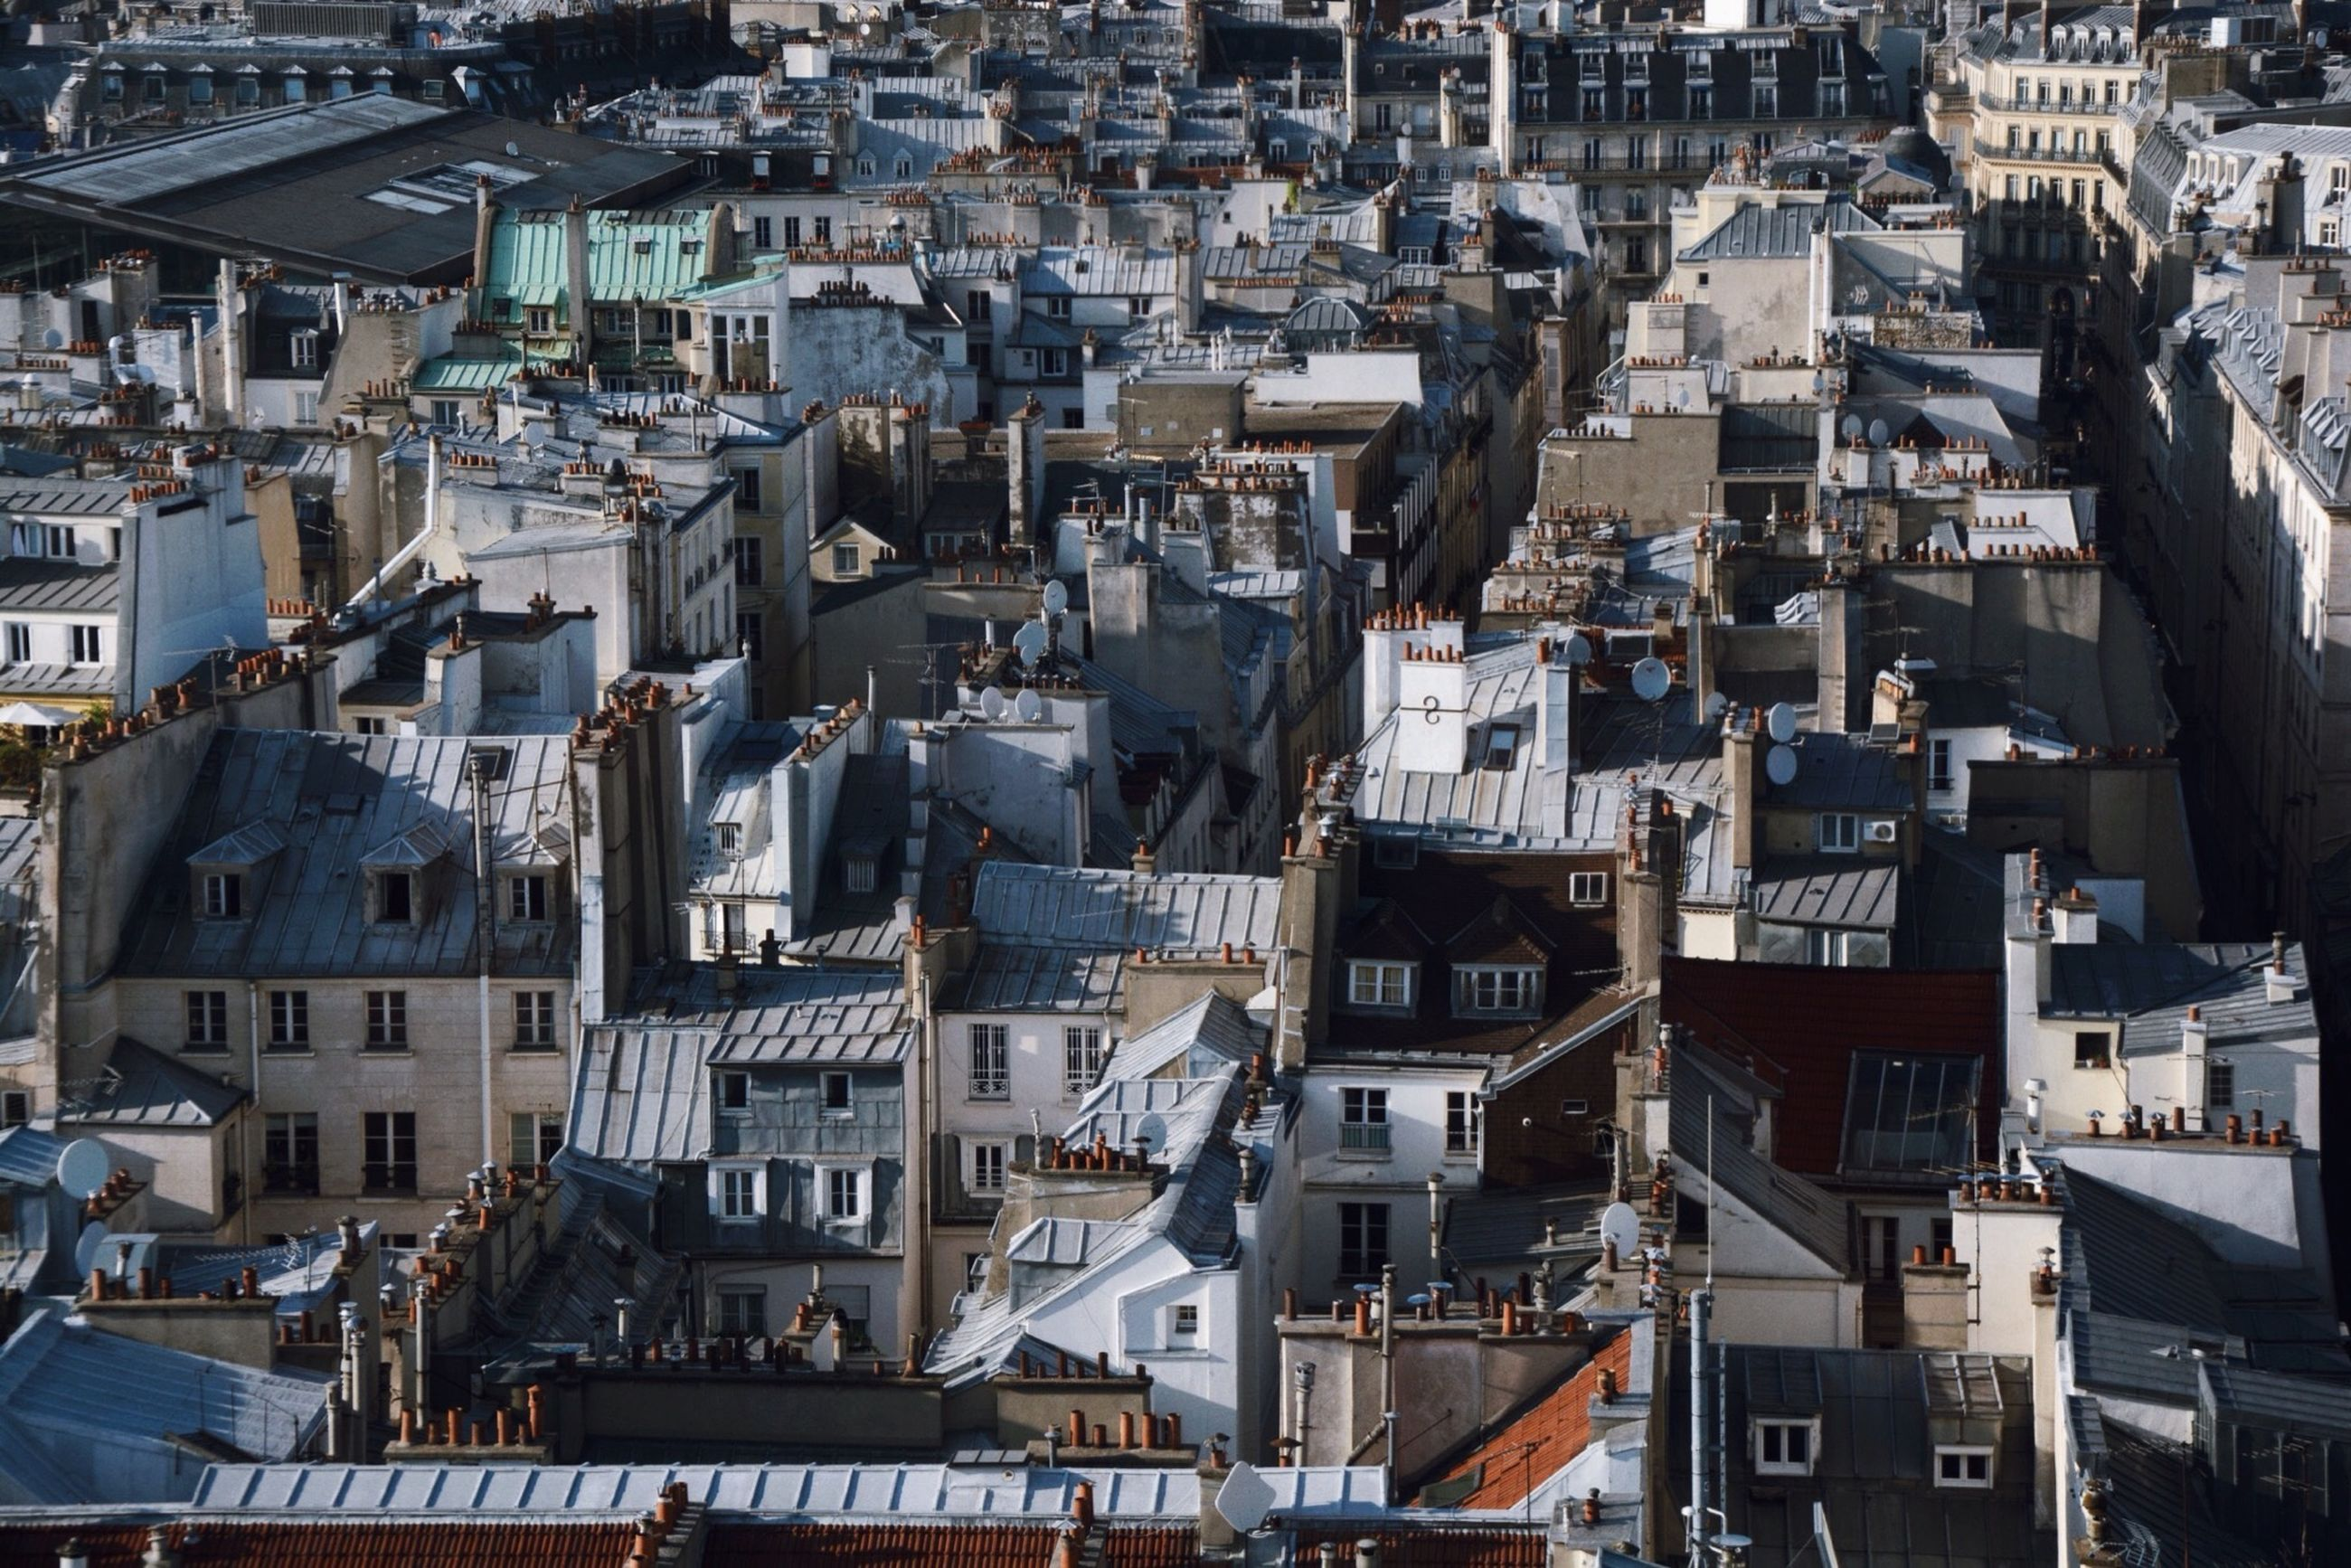 building exterior, architecture, built structure, crowded, high angle view, city, cityscape, residential district, residential structure, roof, residential building, house, town, townscape, day, development, outdoors, city life, community, no people